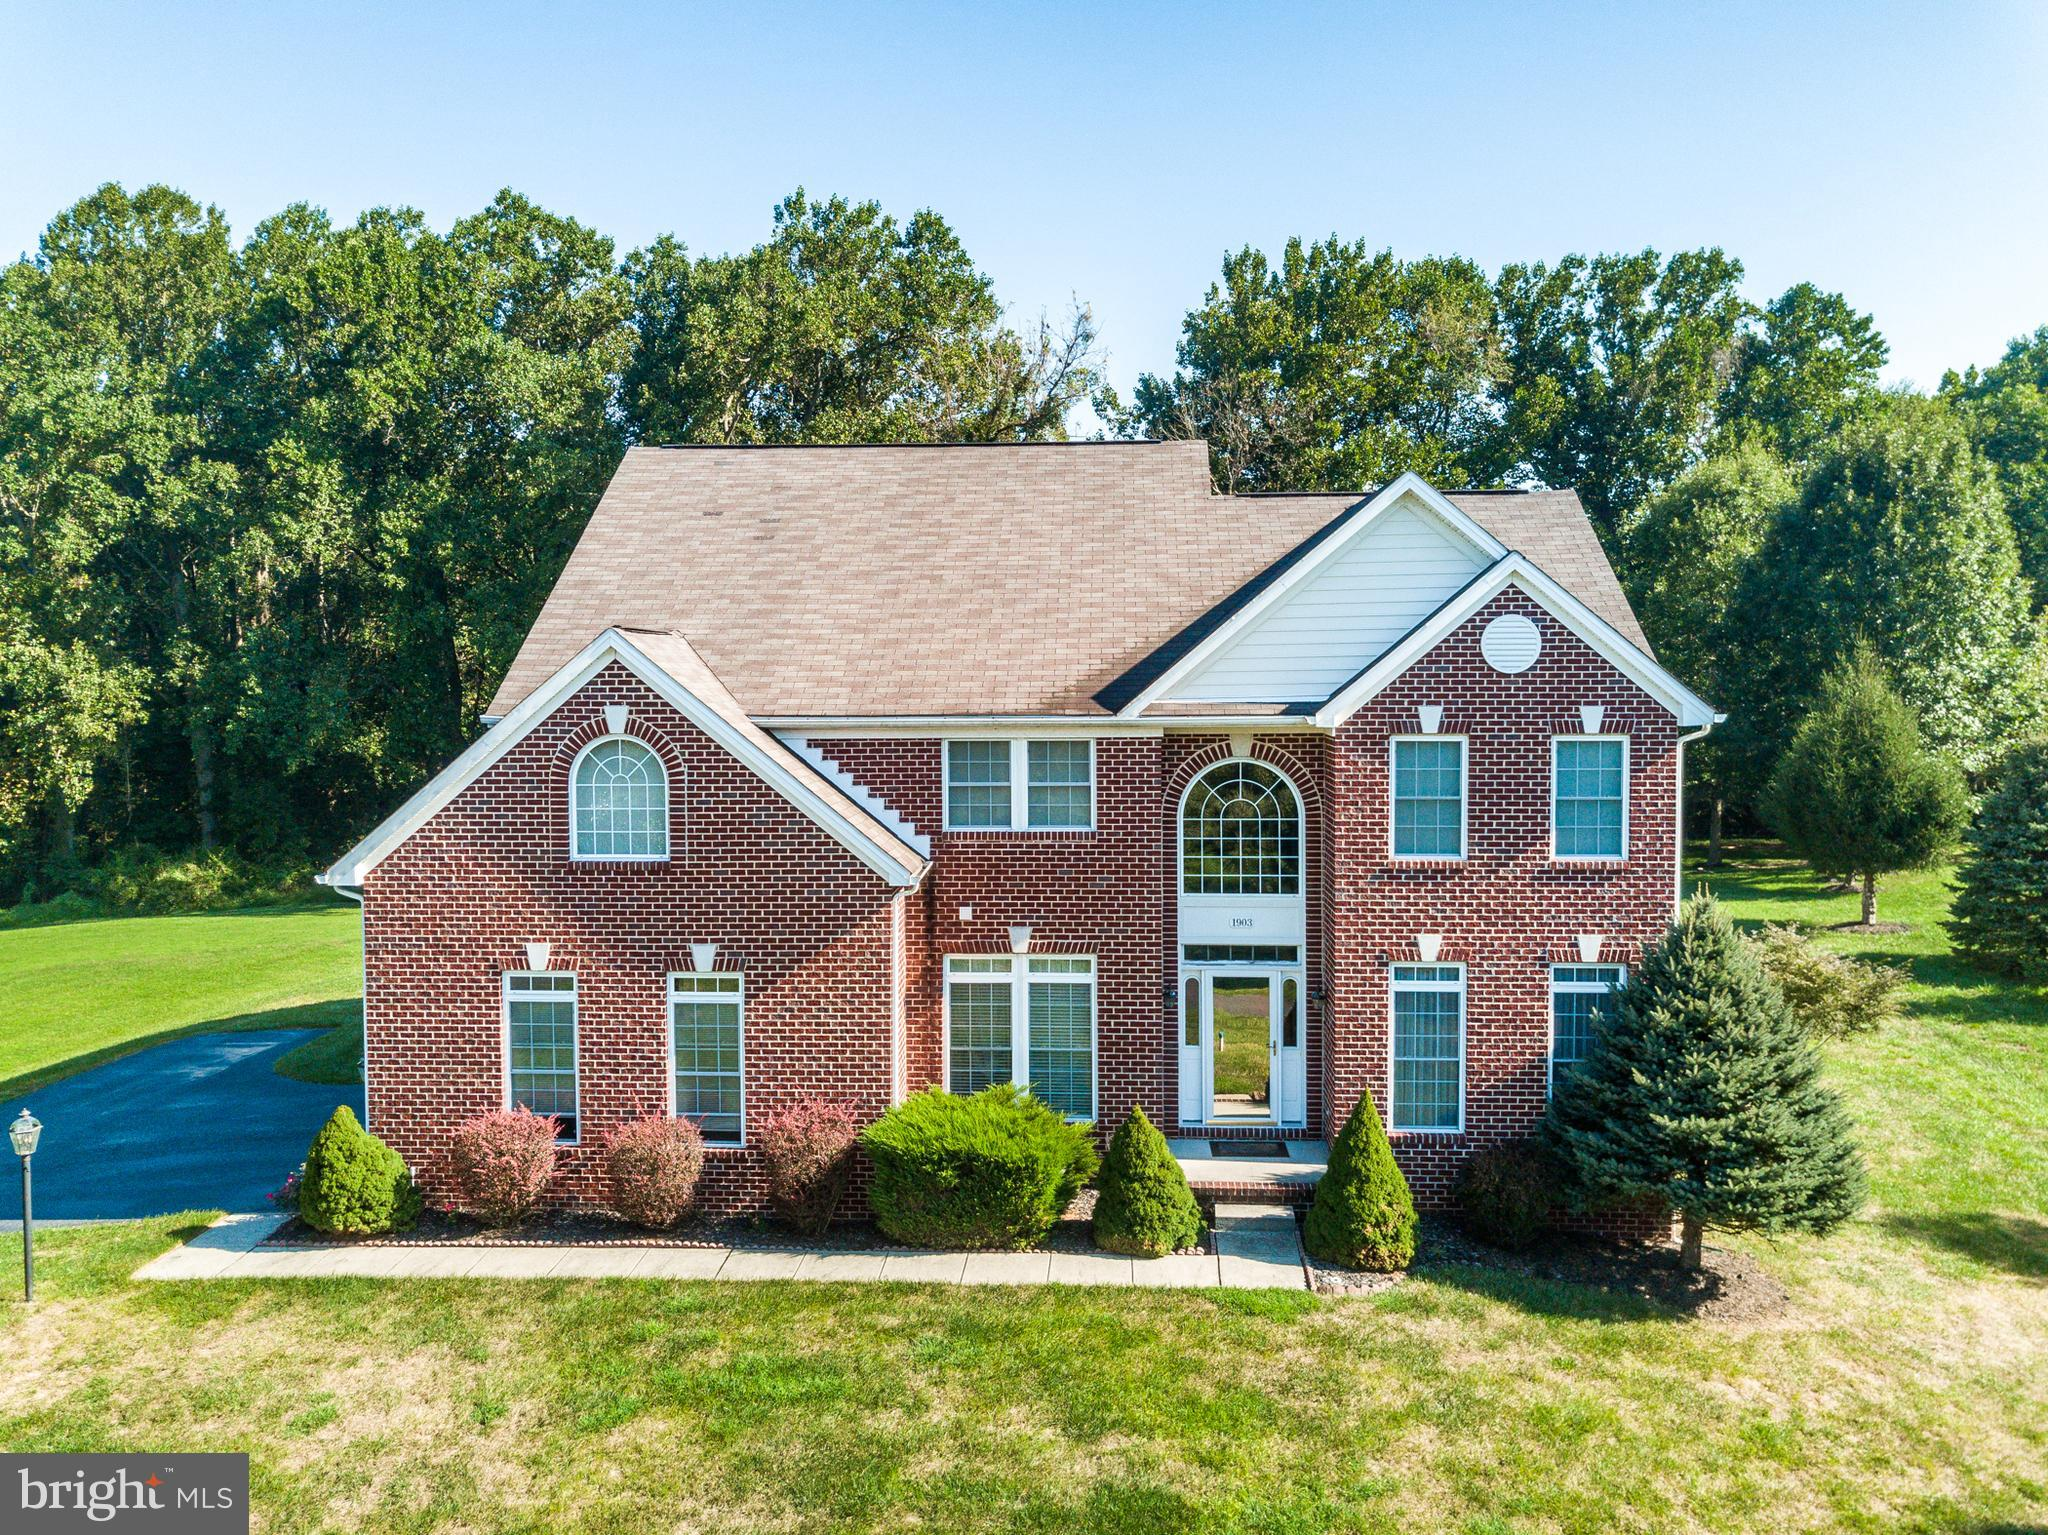 1903 COACHMAN COURT, FALLSTON, MD 21047